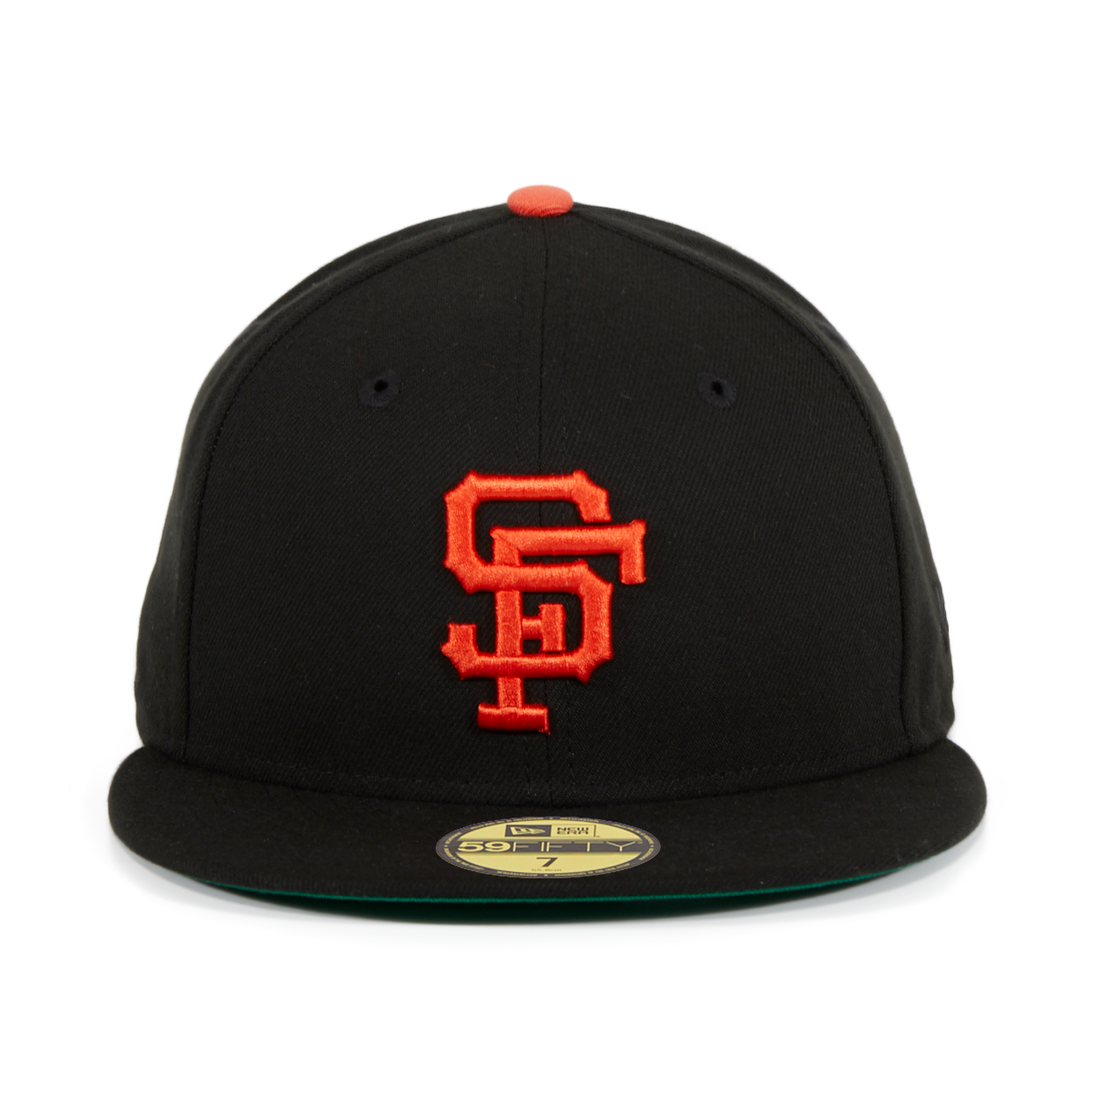 new styles ad371 52235 ... best exclusive new era 59fifty san francisco giants 1958 game hat black  orange c9cc7 10e12